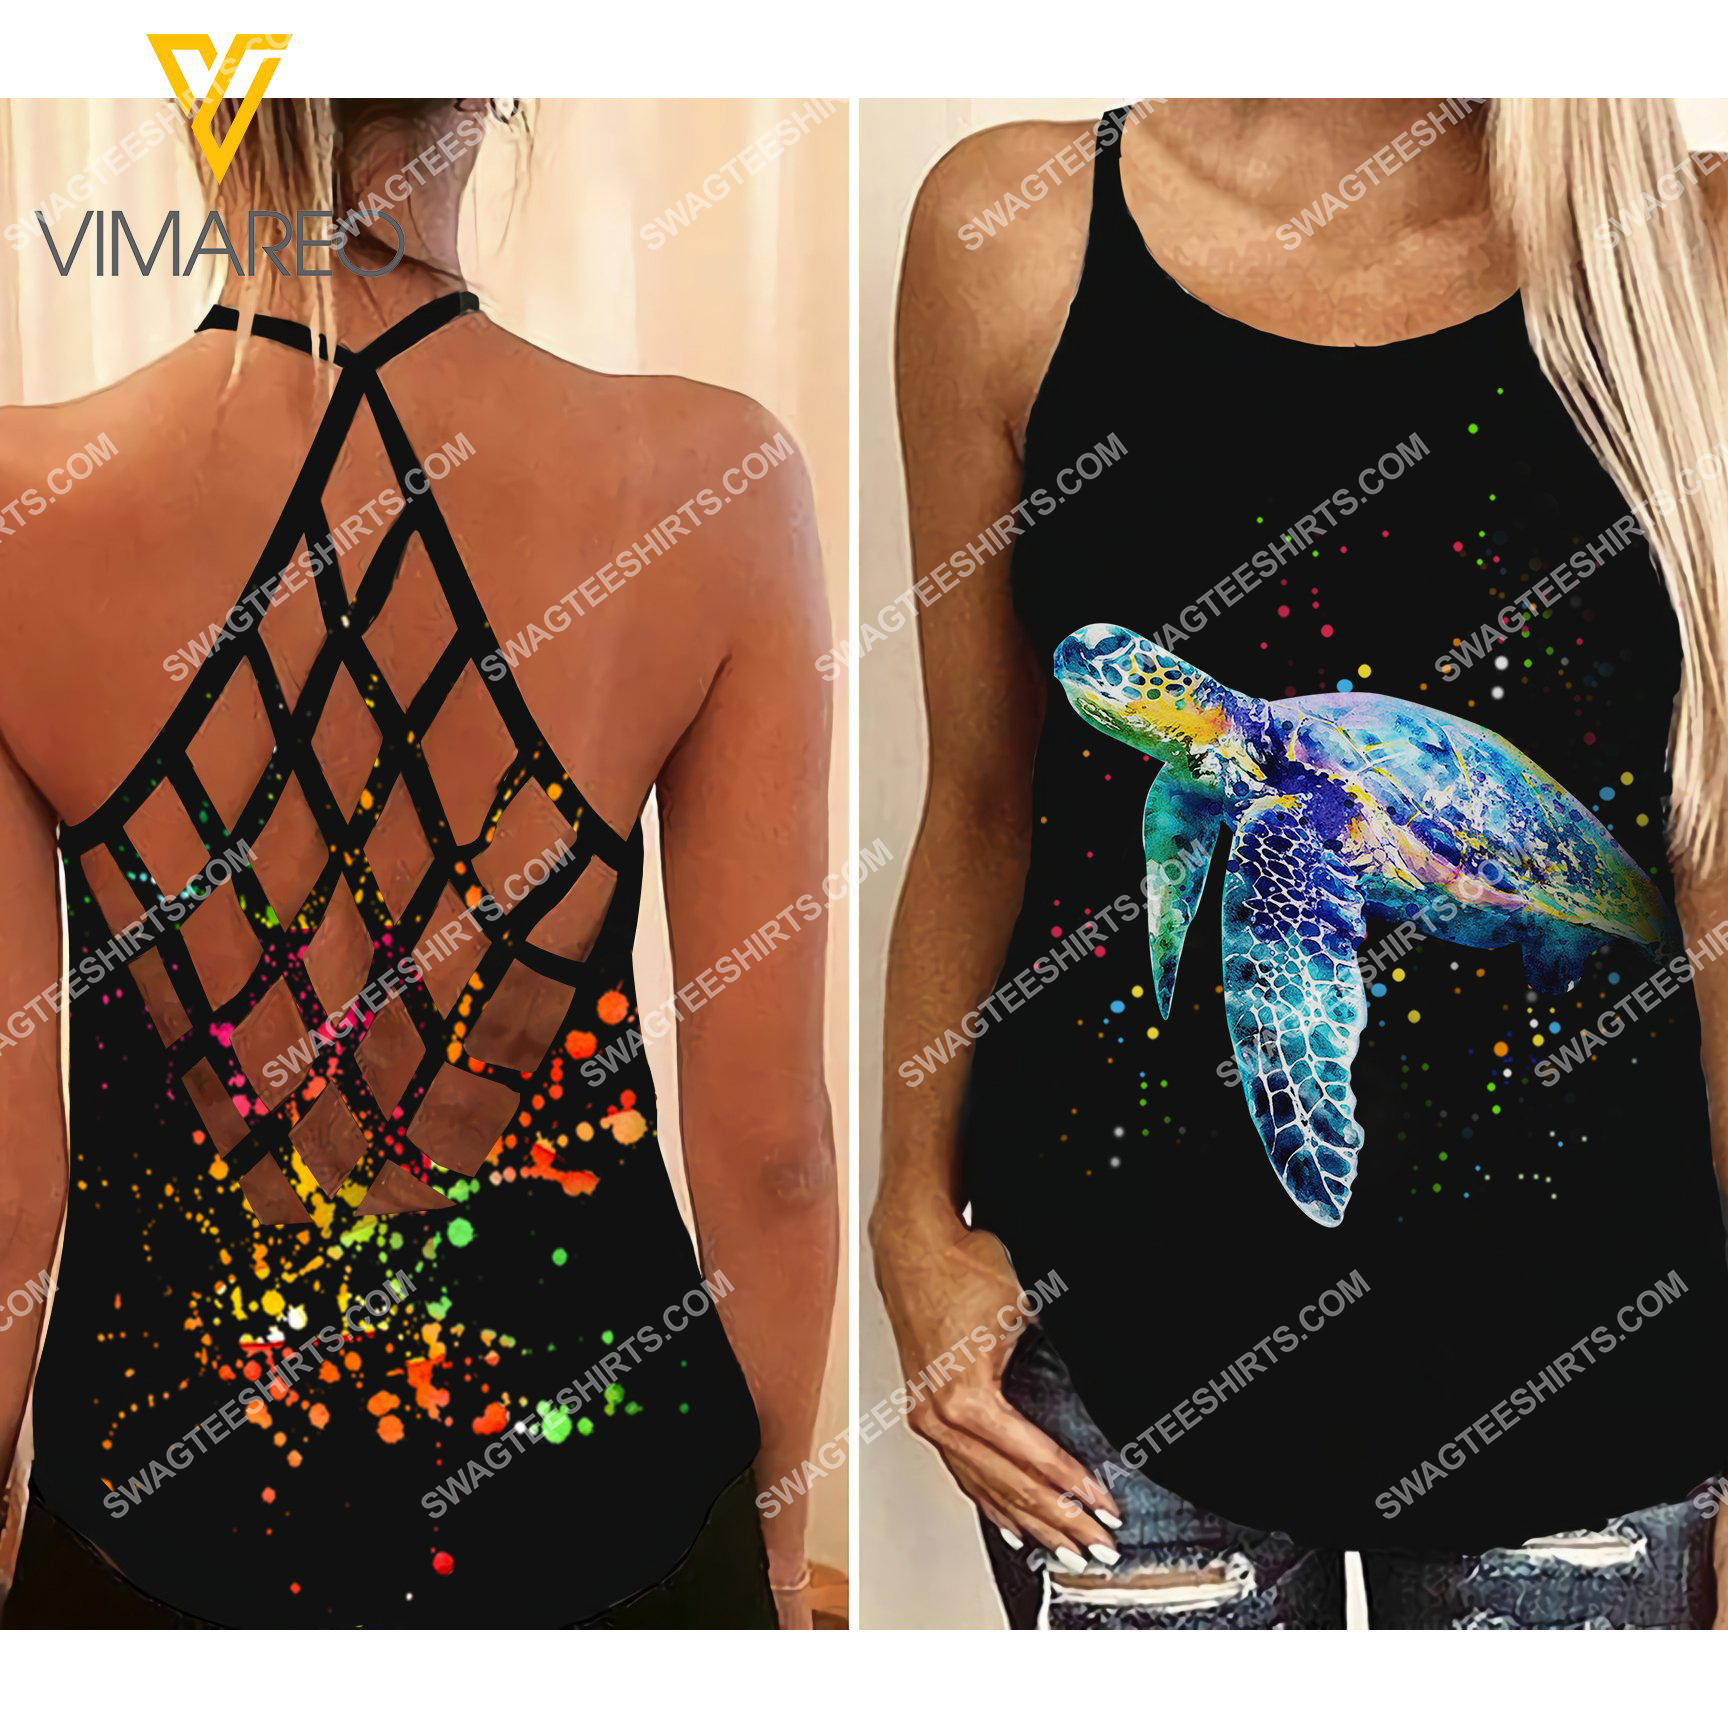 sea turtle colorful all over printed strappy back tank top 2